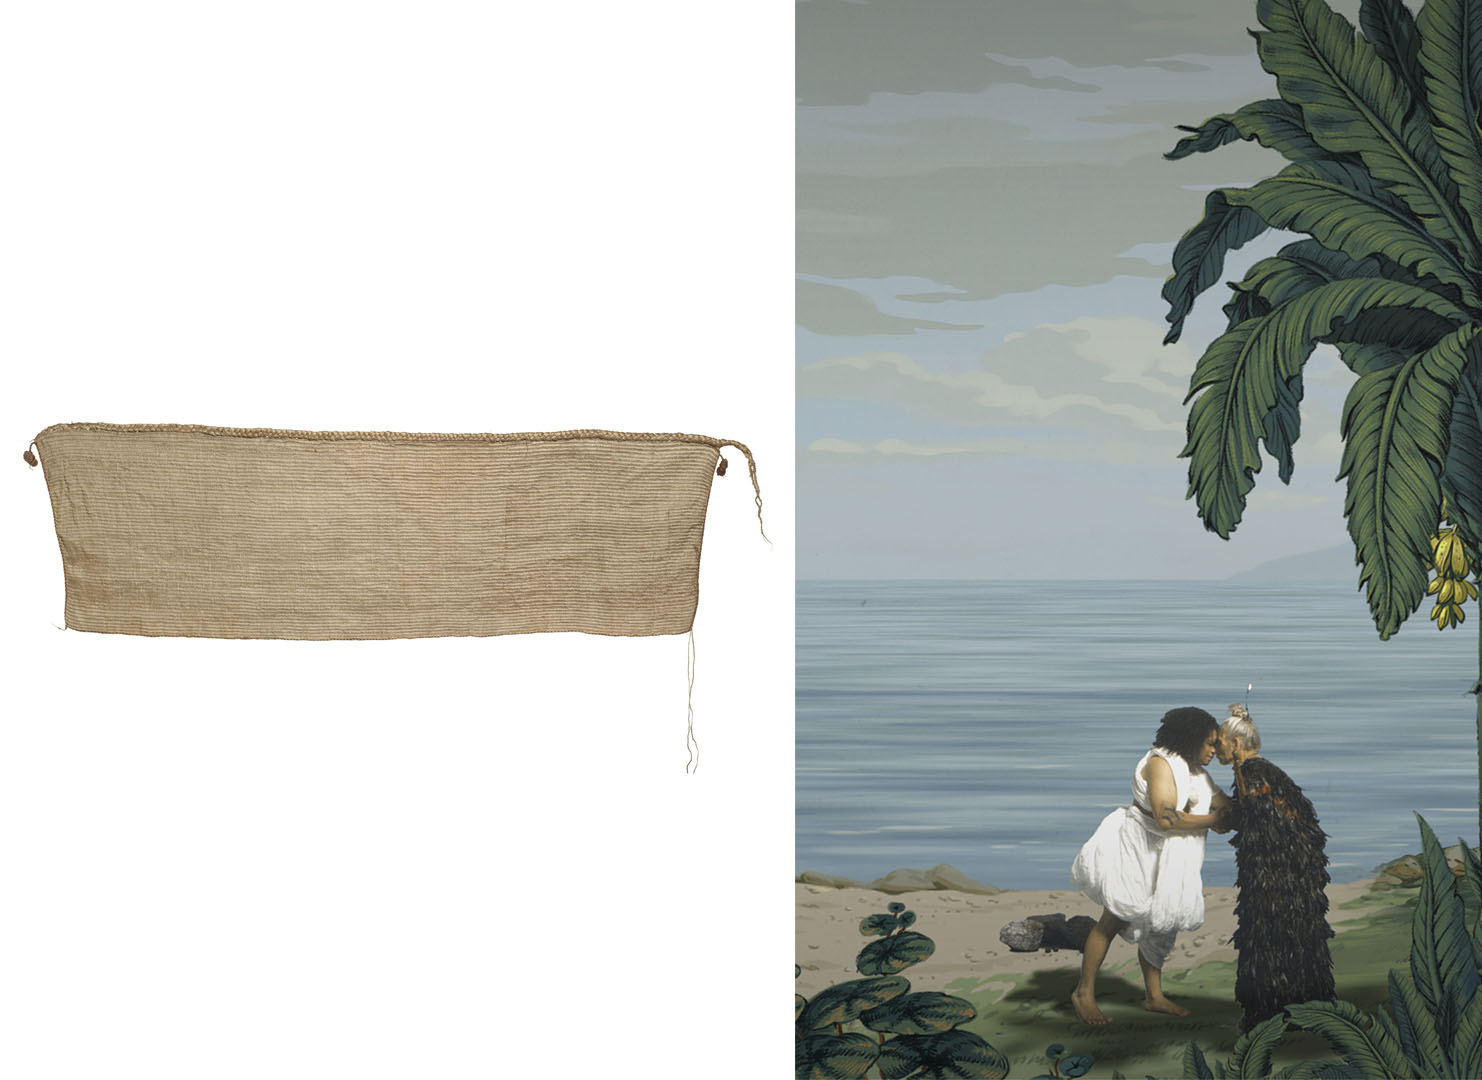 On the left is a woven cloak, on the right is a still from in Pursuit of Venus [infected] showing two people participating in a hongi